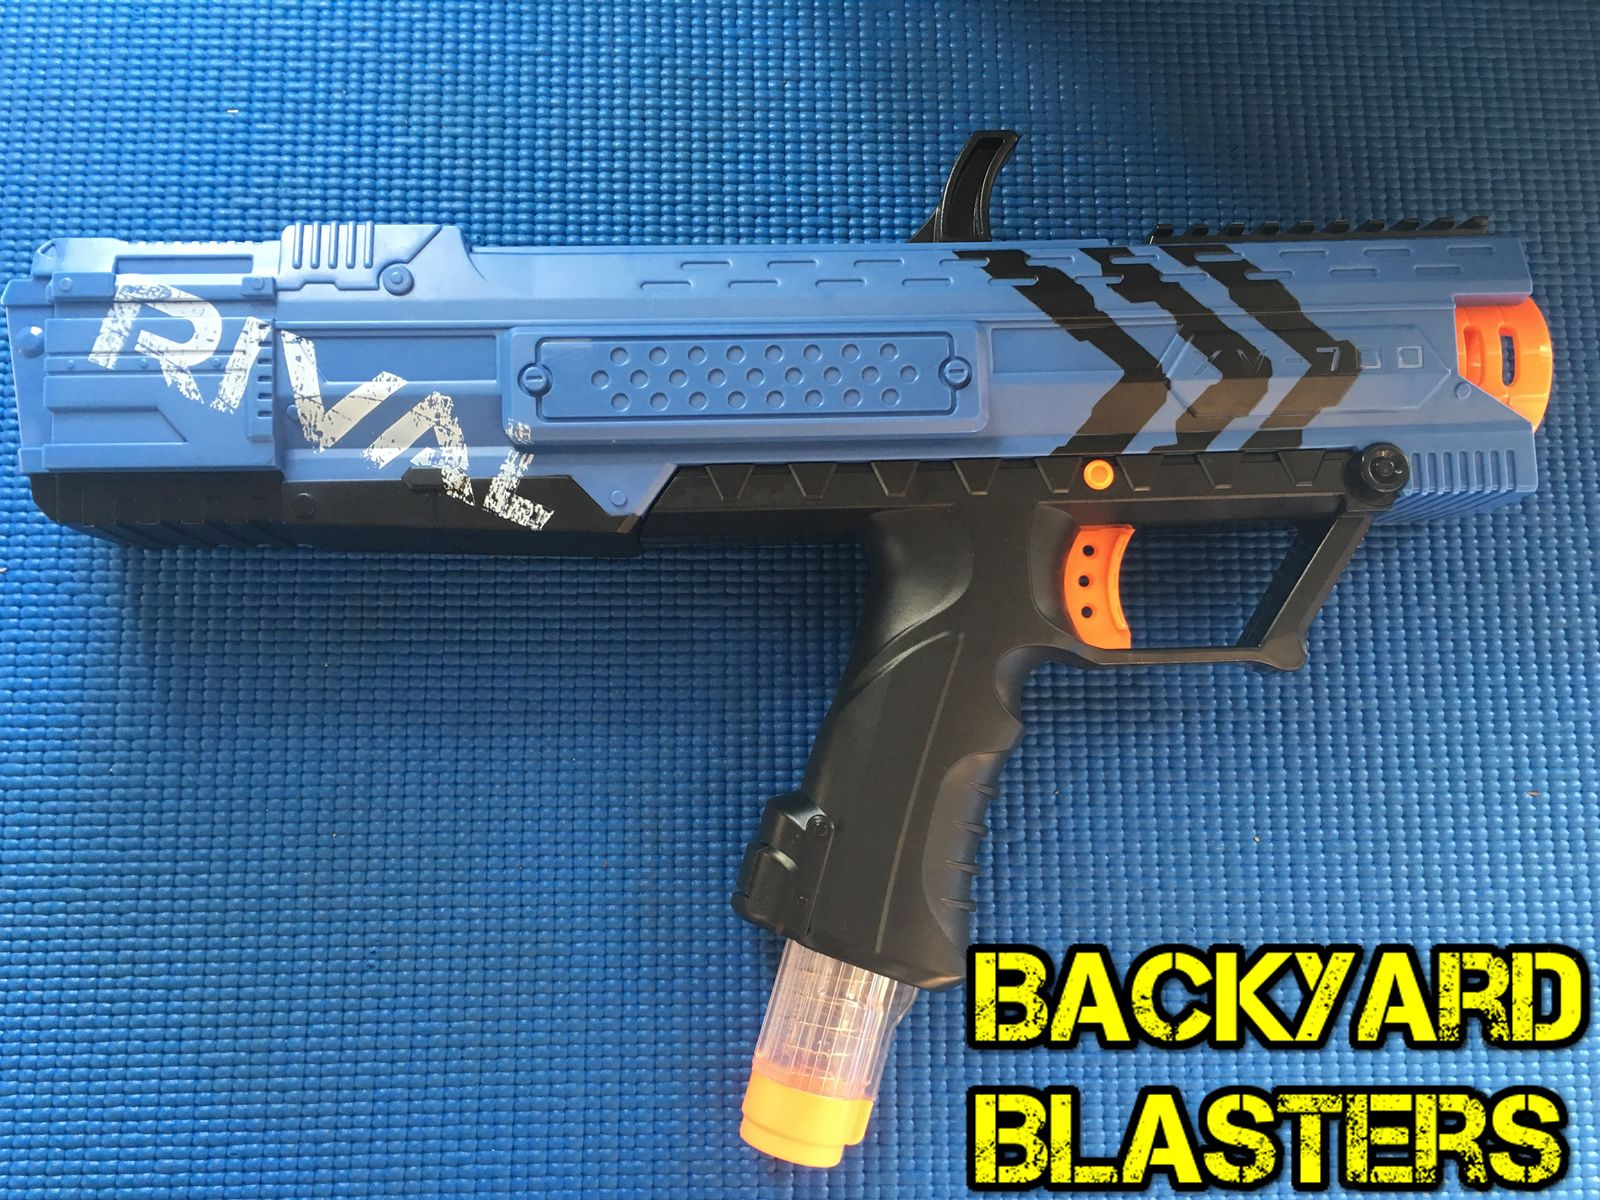 Its the Nerf Rival Apollo! Pat on the back if you guessed it right! But we  should really ask you guys, what is your favourite Rival Blaster?